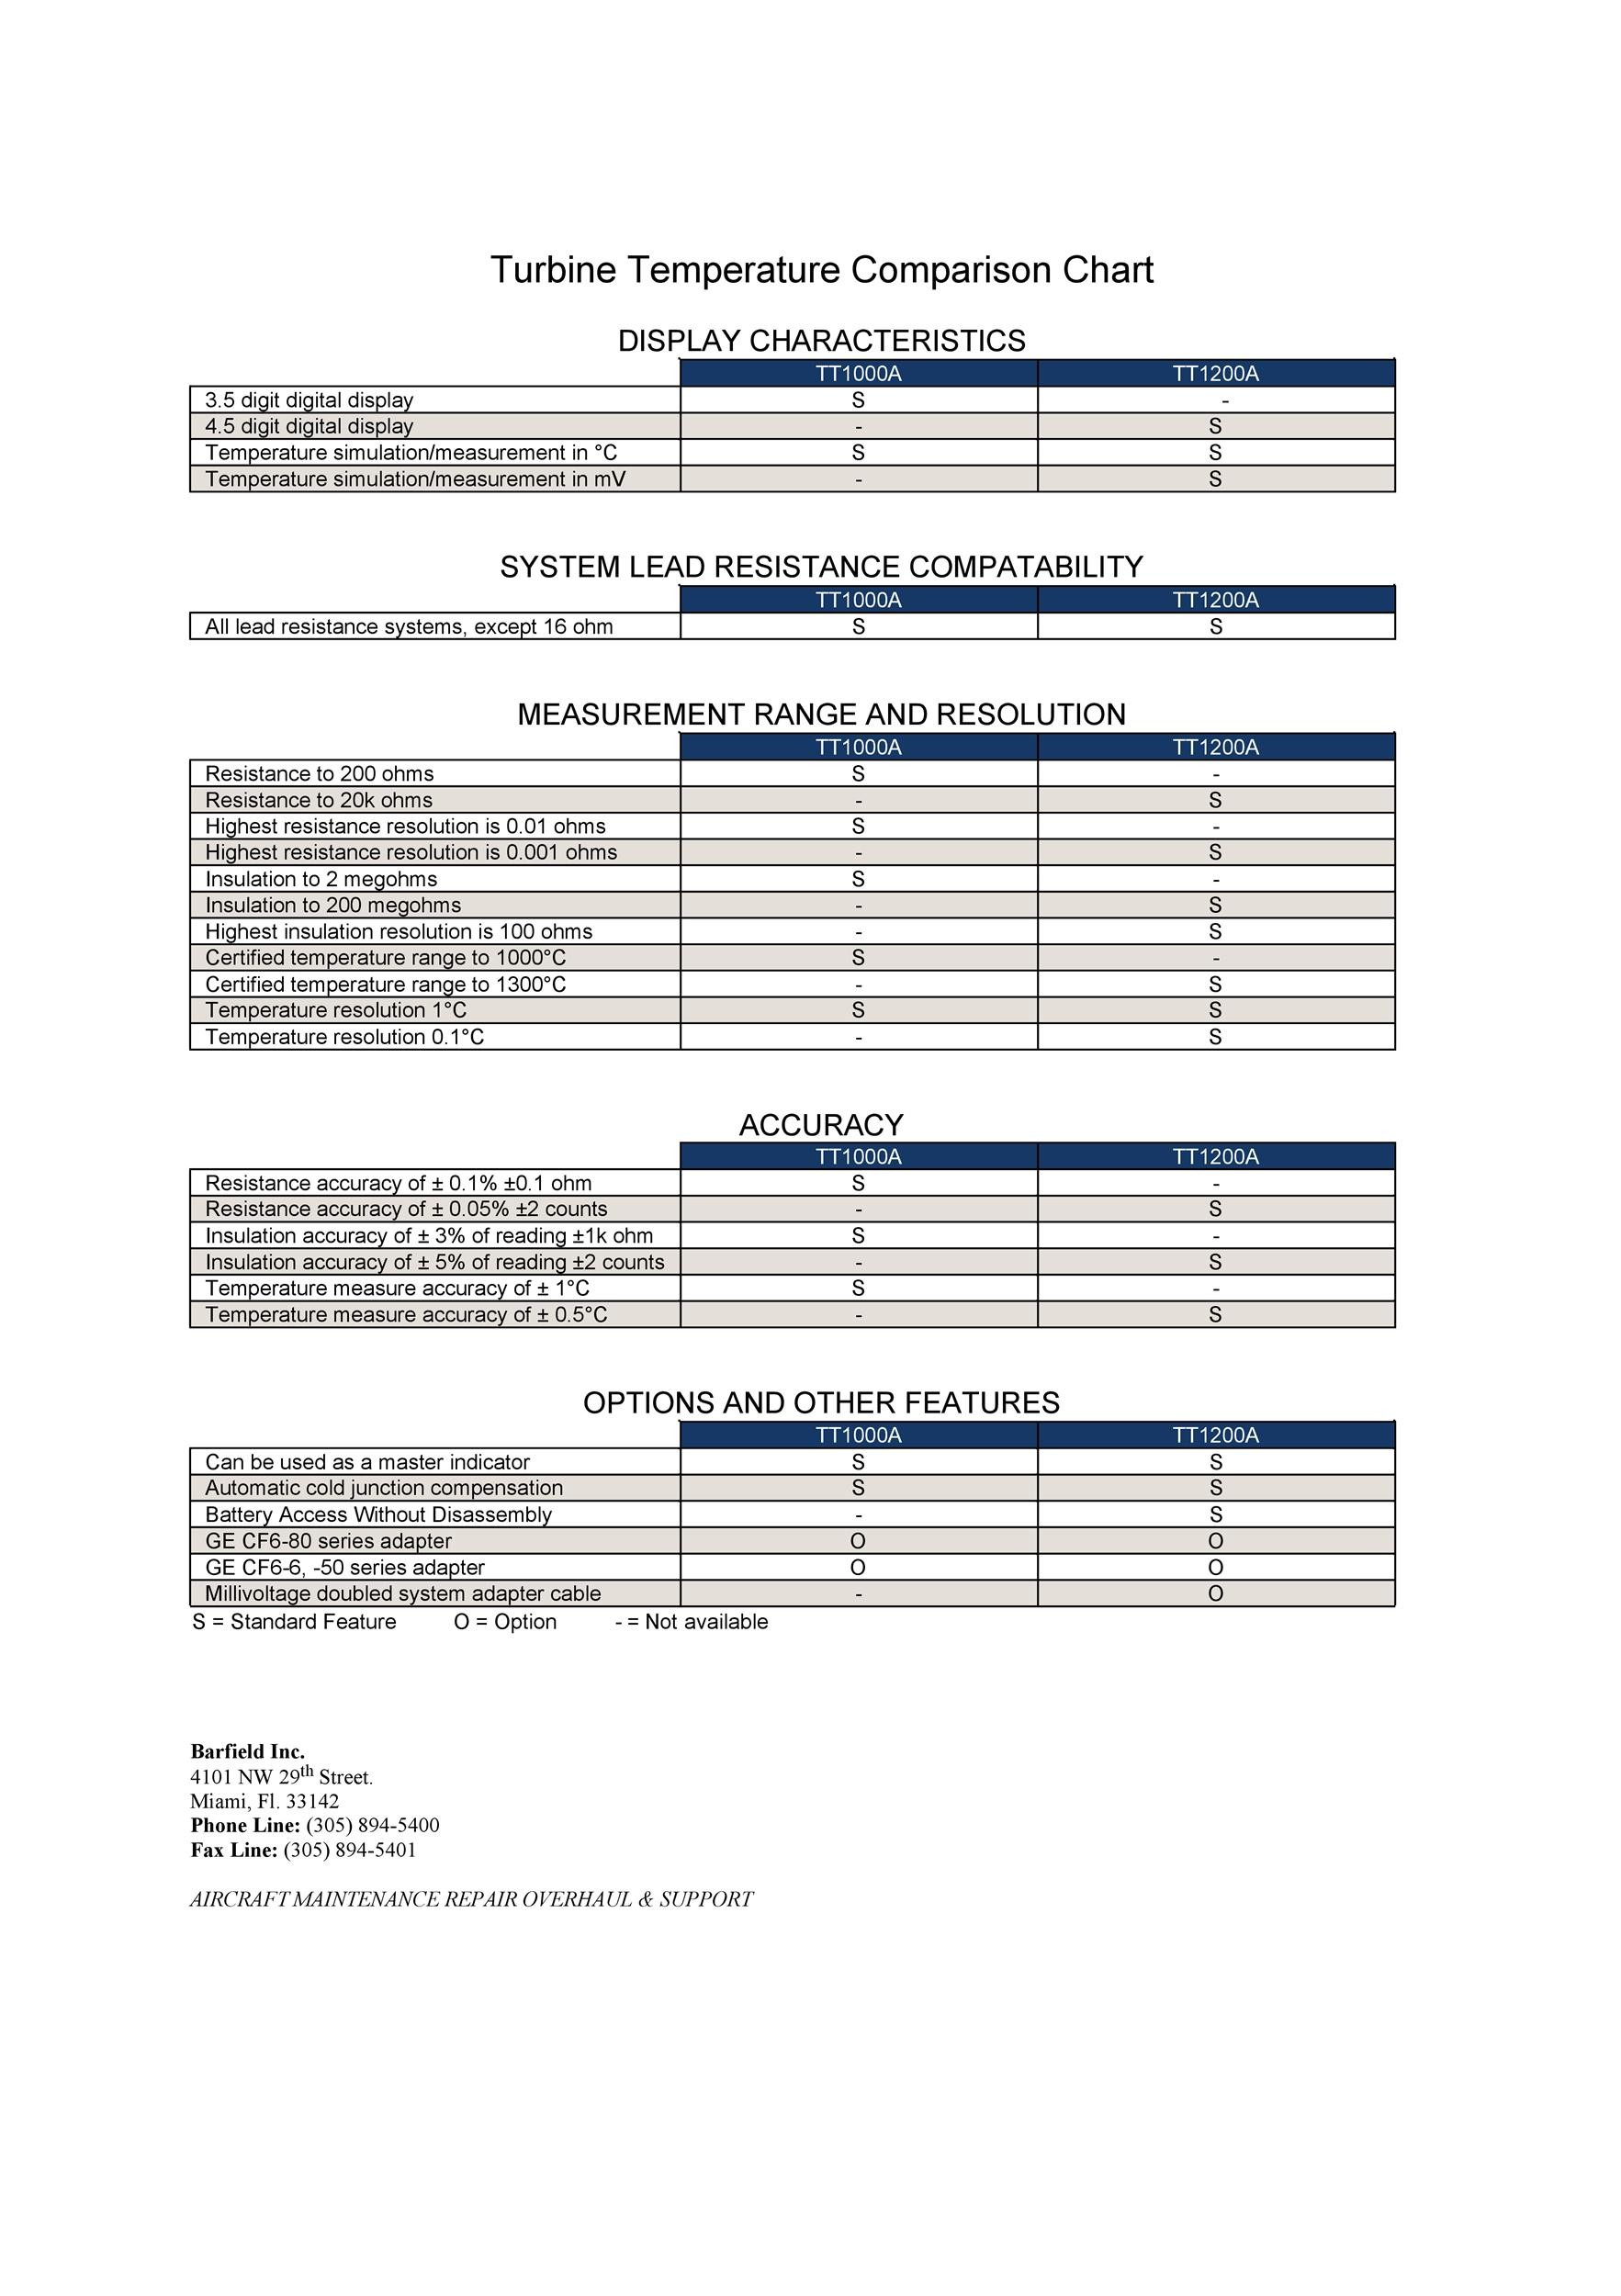 40 Great Comparison Chart Templates for ANY Situation - Template Lab - comparison chart templates